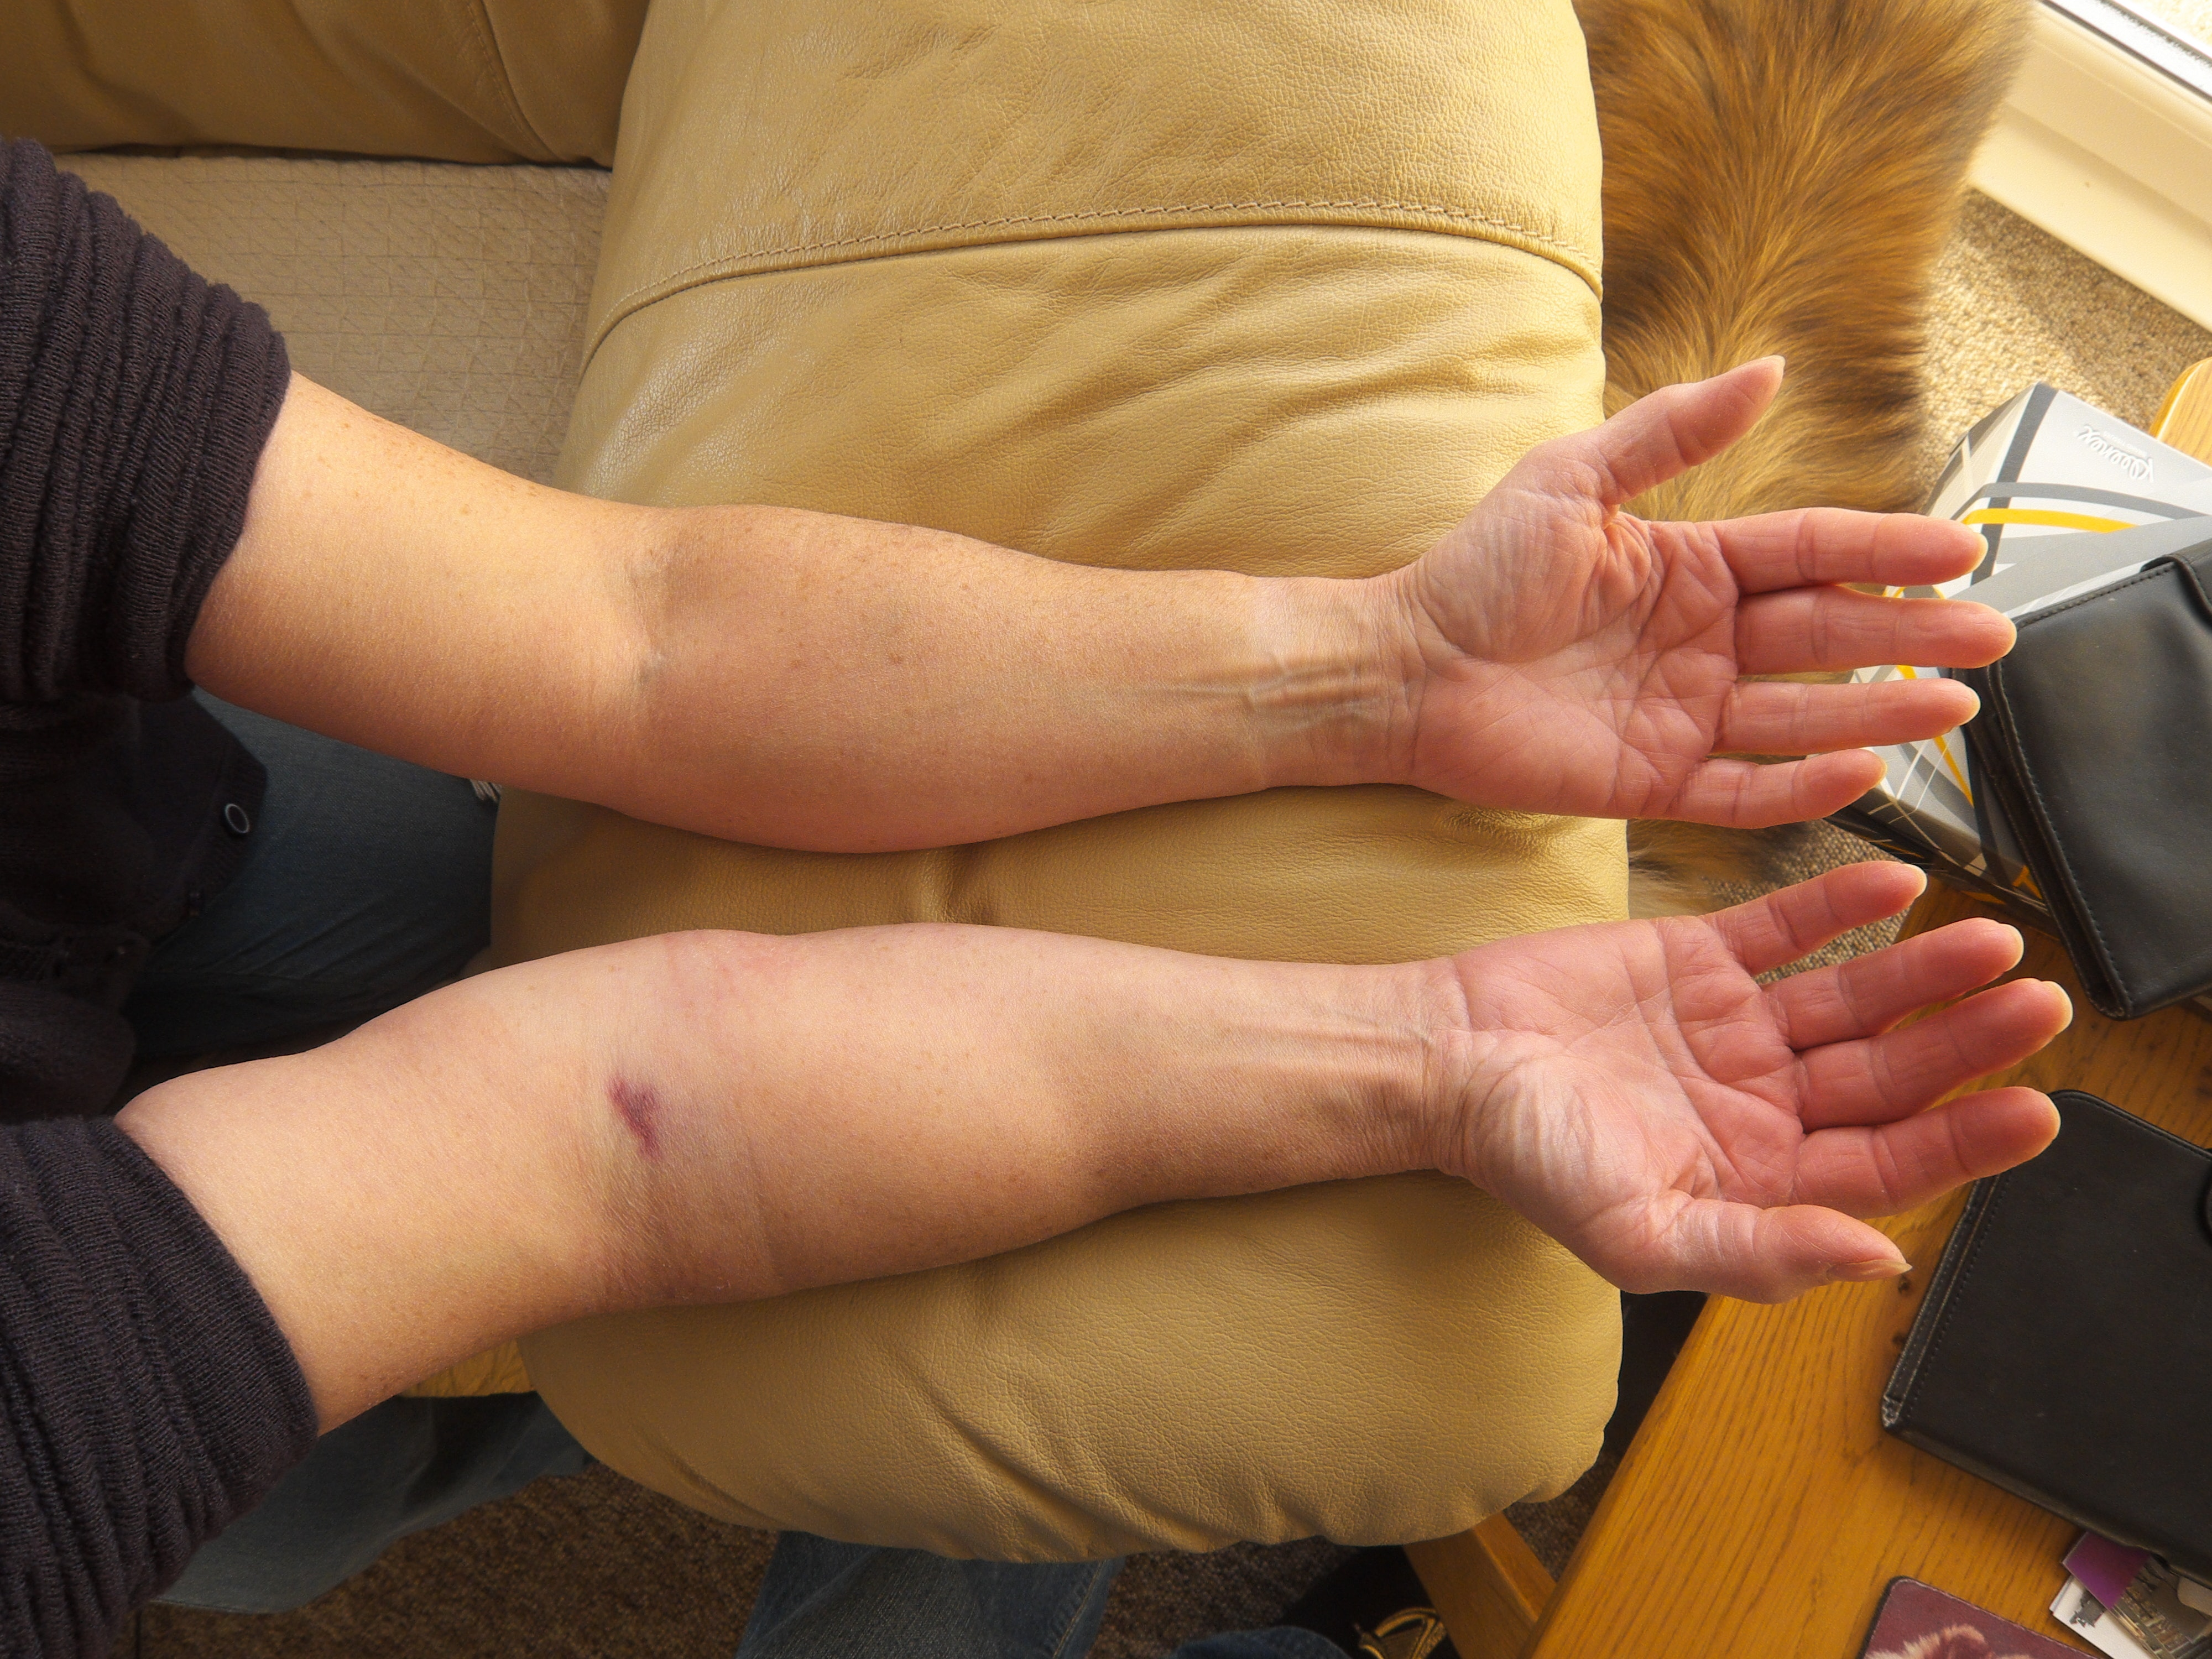 An image depicting a person suffering from swelling of one forearm symptoms